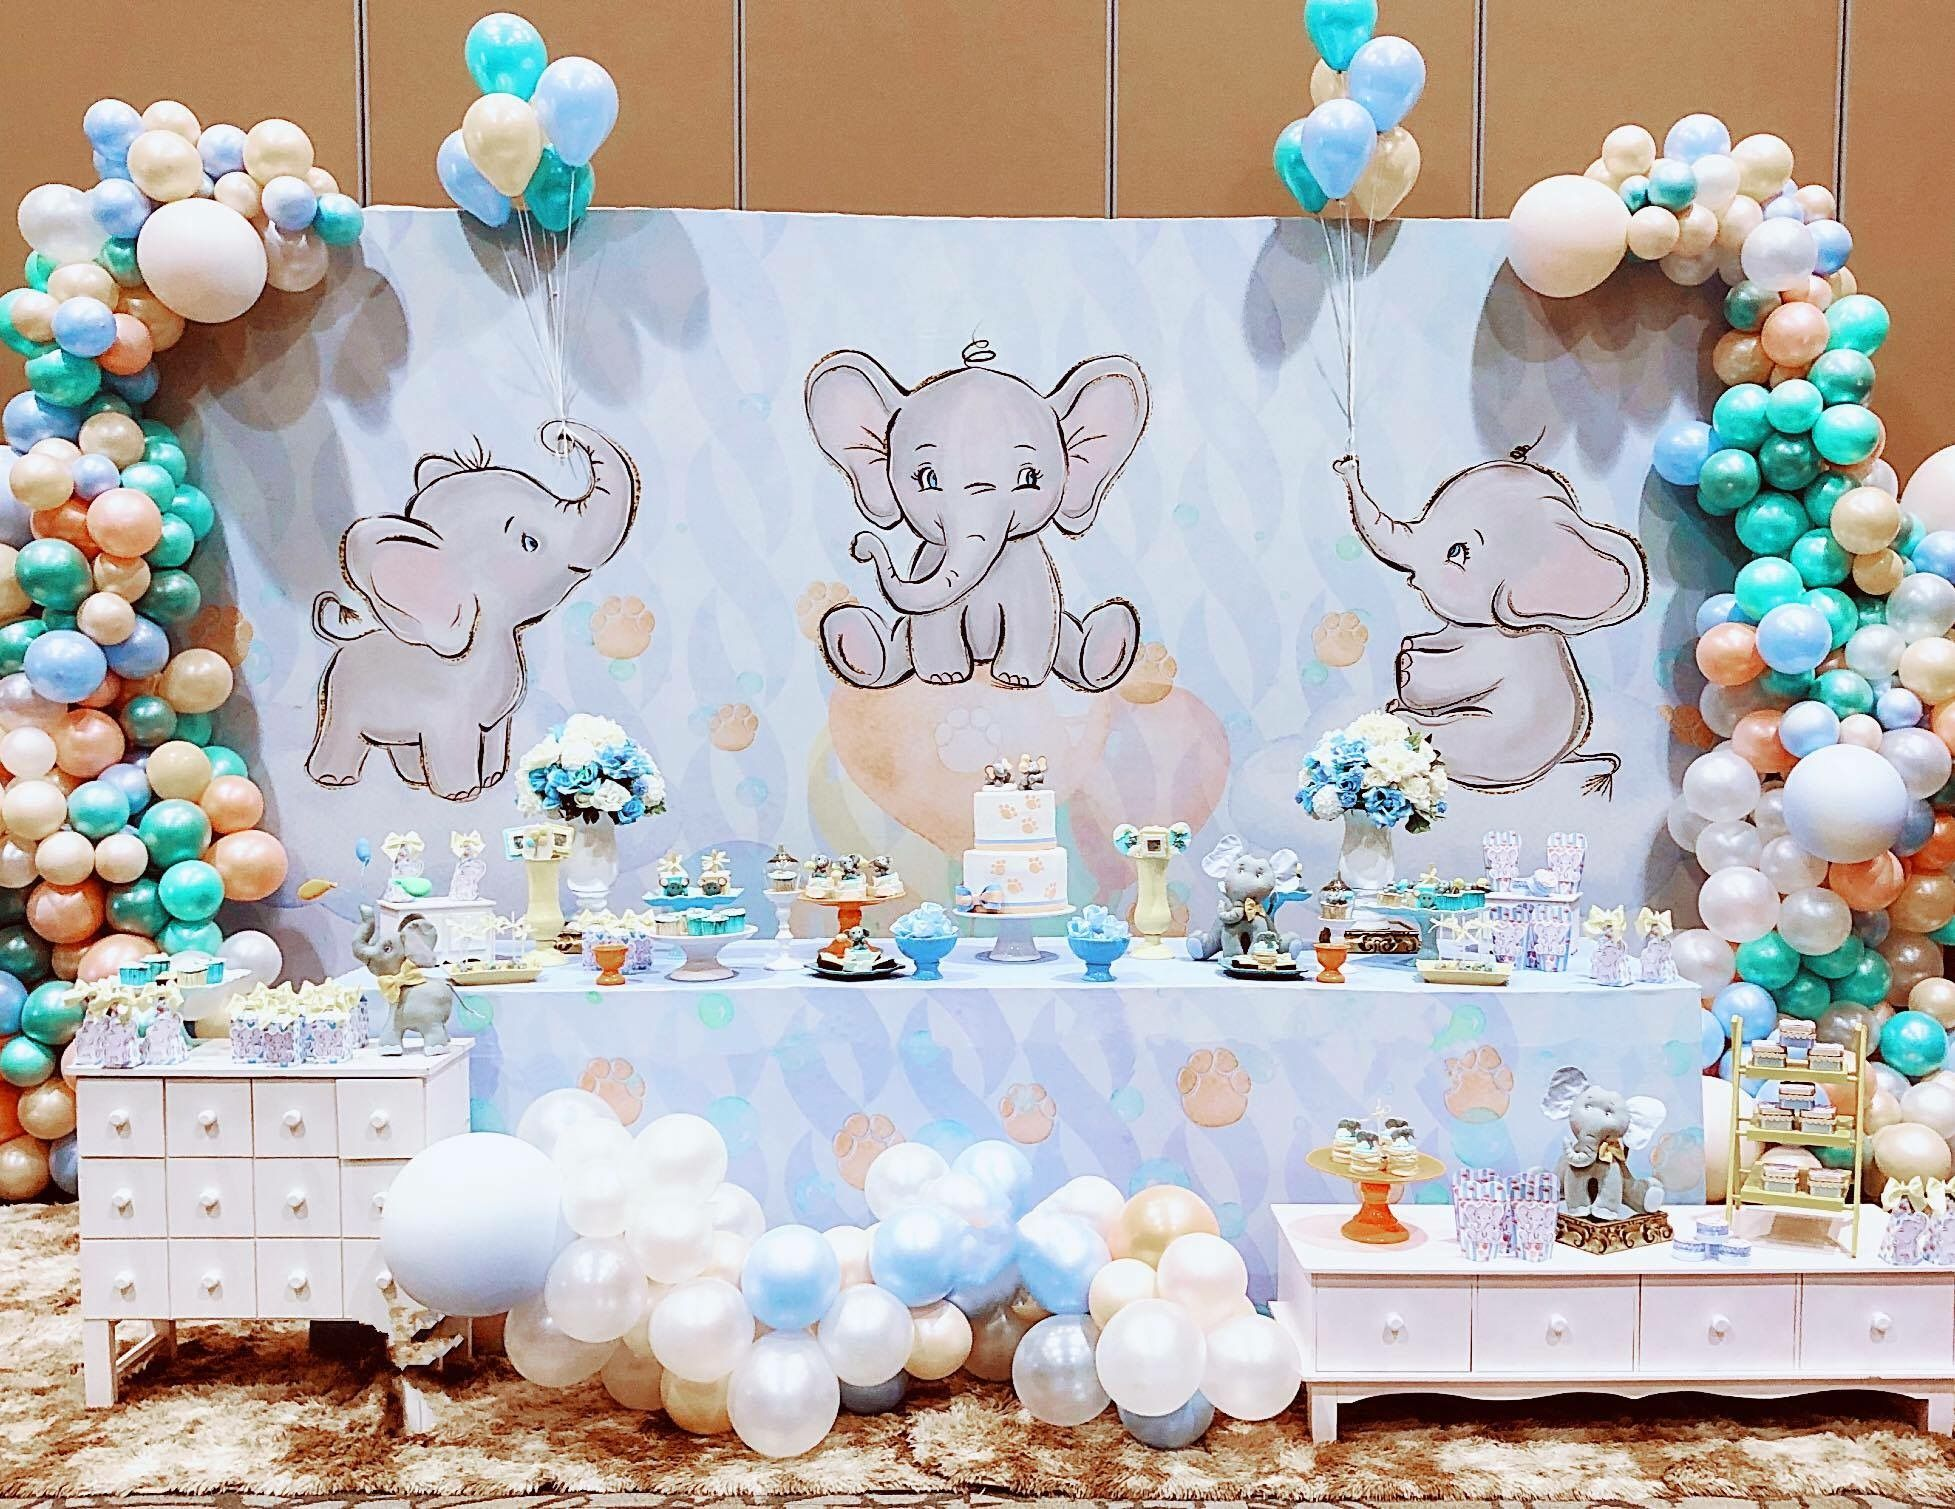 Pin By Leslie Roman On Marian Roman In 2020 Baby Shower Decorations For Boys Dumbo Baby Shower Baby Shower Balloons